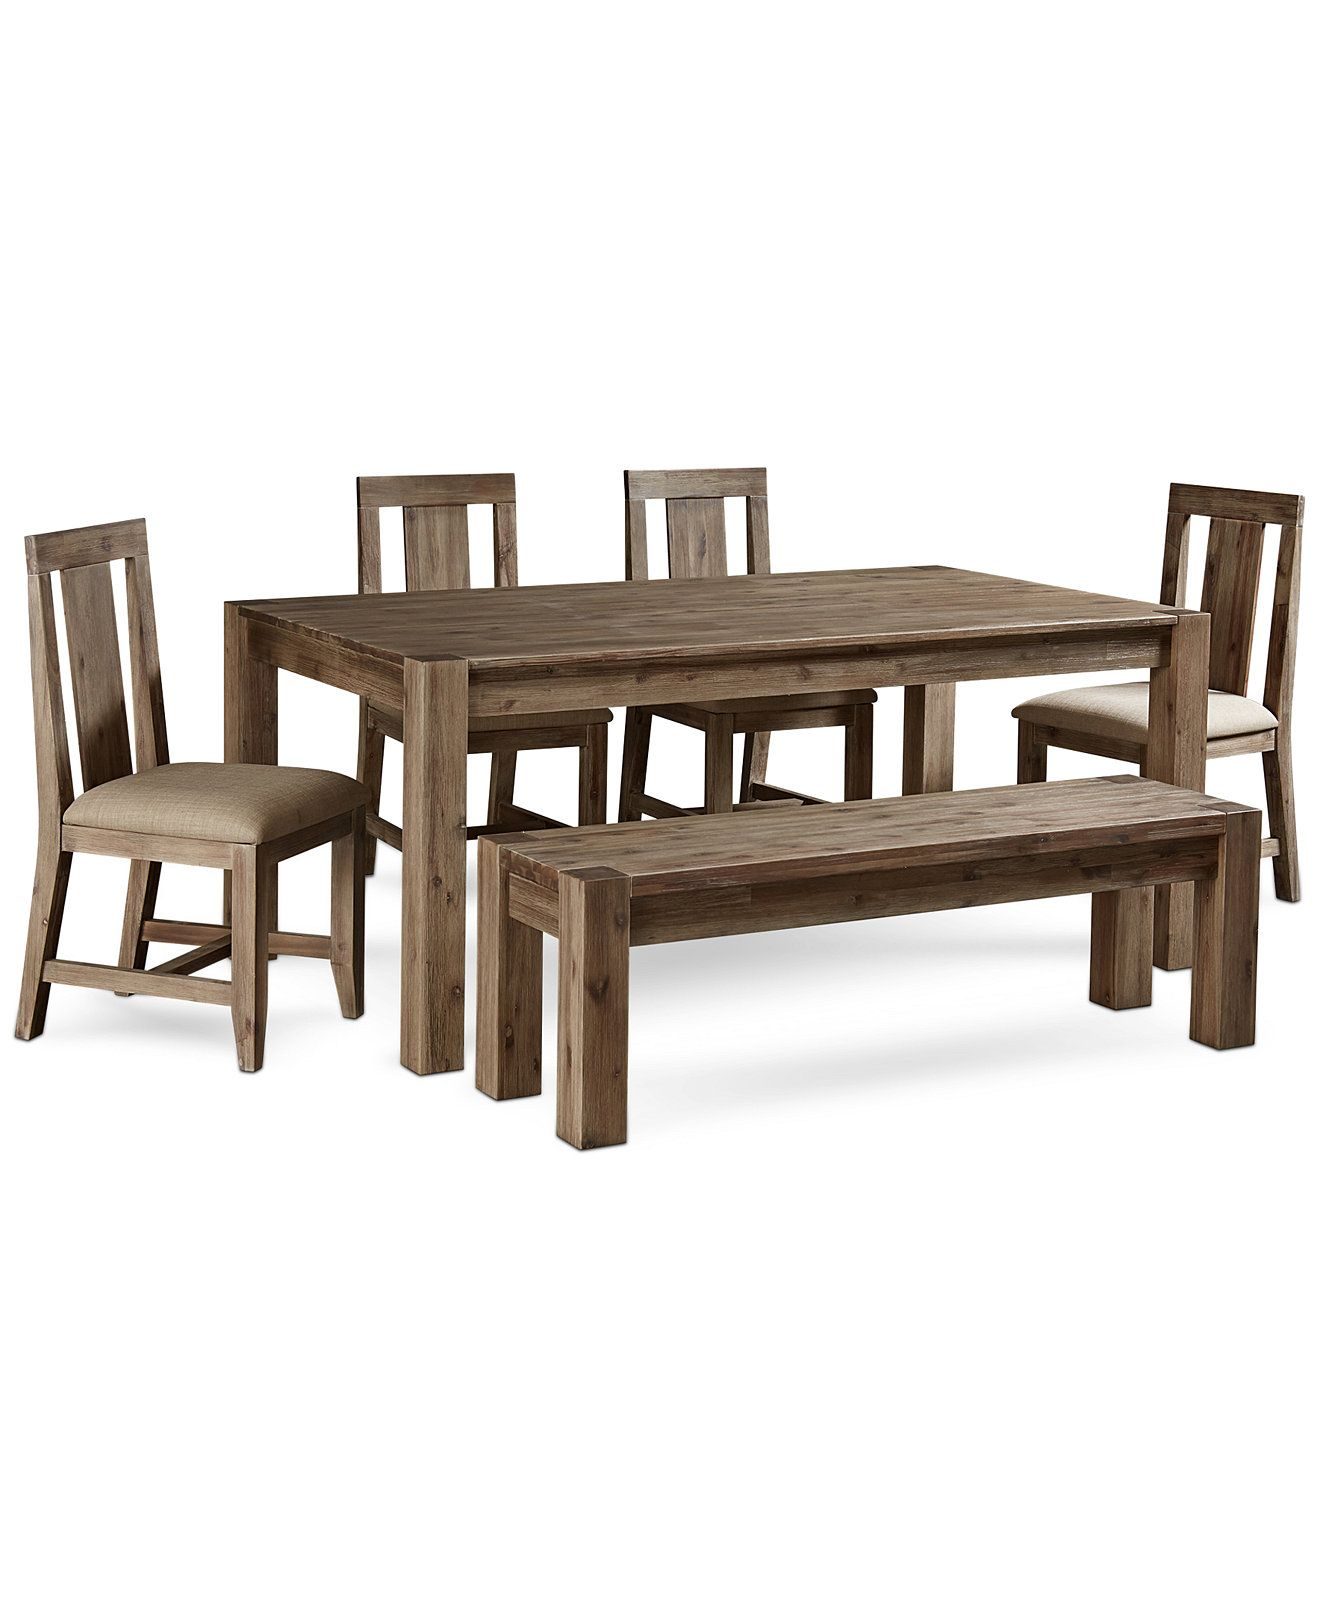 Canyon 6 Piece Dining Set Created For Macy S 72 Dining Table 4